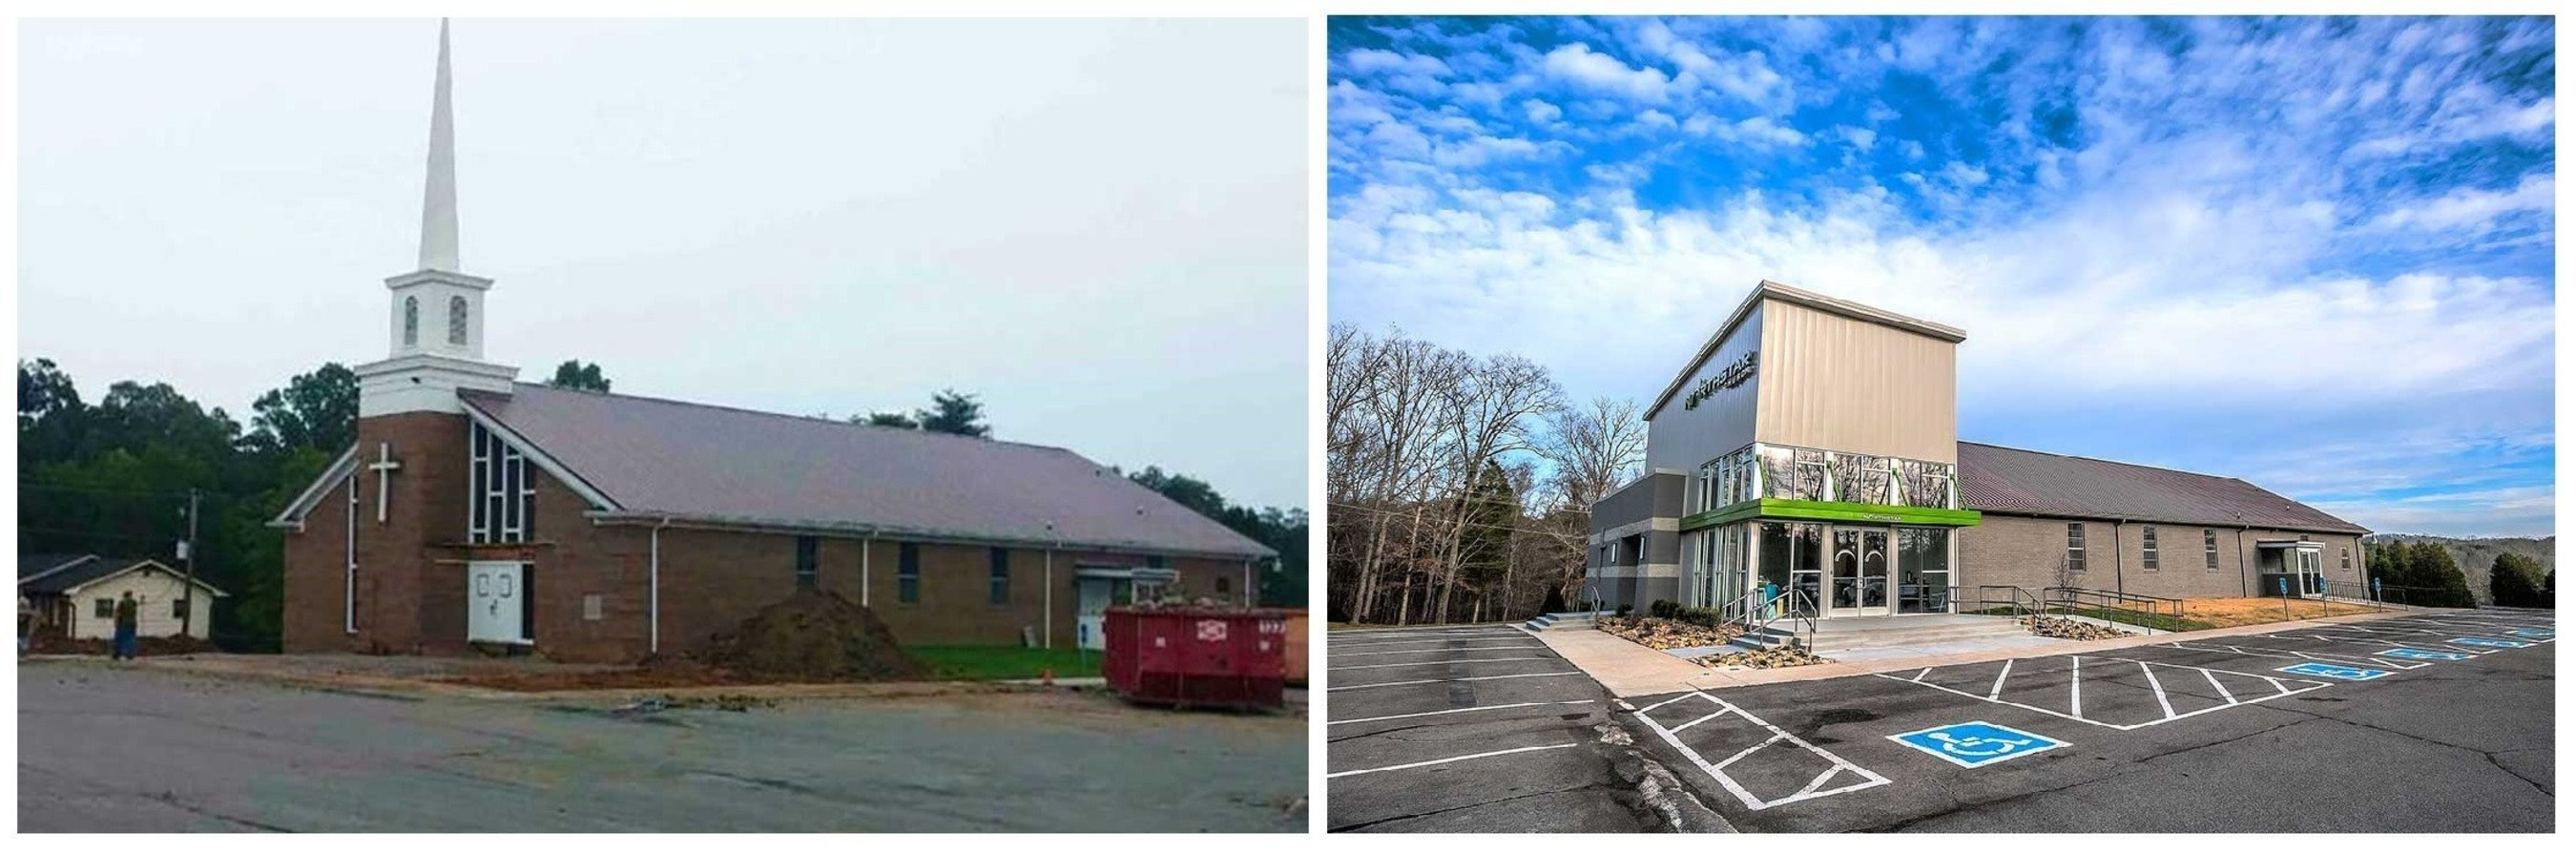 A before and after look at the Worship Facilities 2016 Solomon Award winning Northstar Church, designed by Studio Four Design and located in Knoxville, Tennessee.